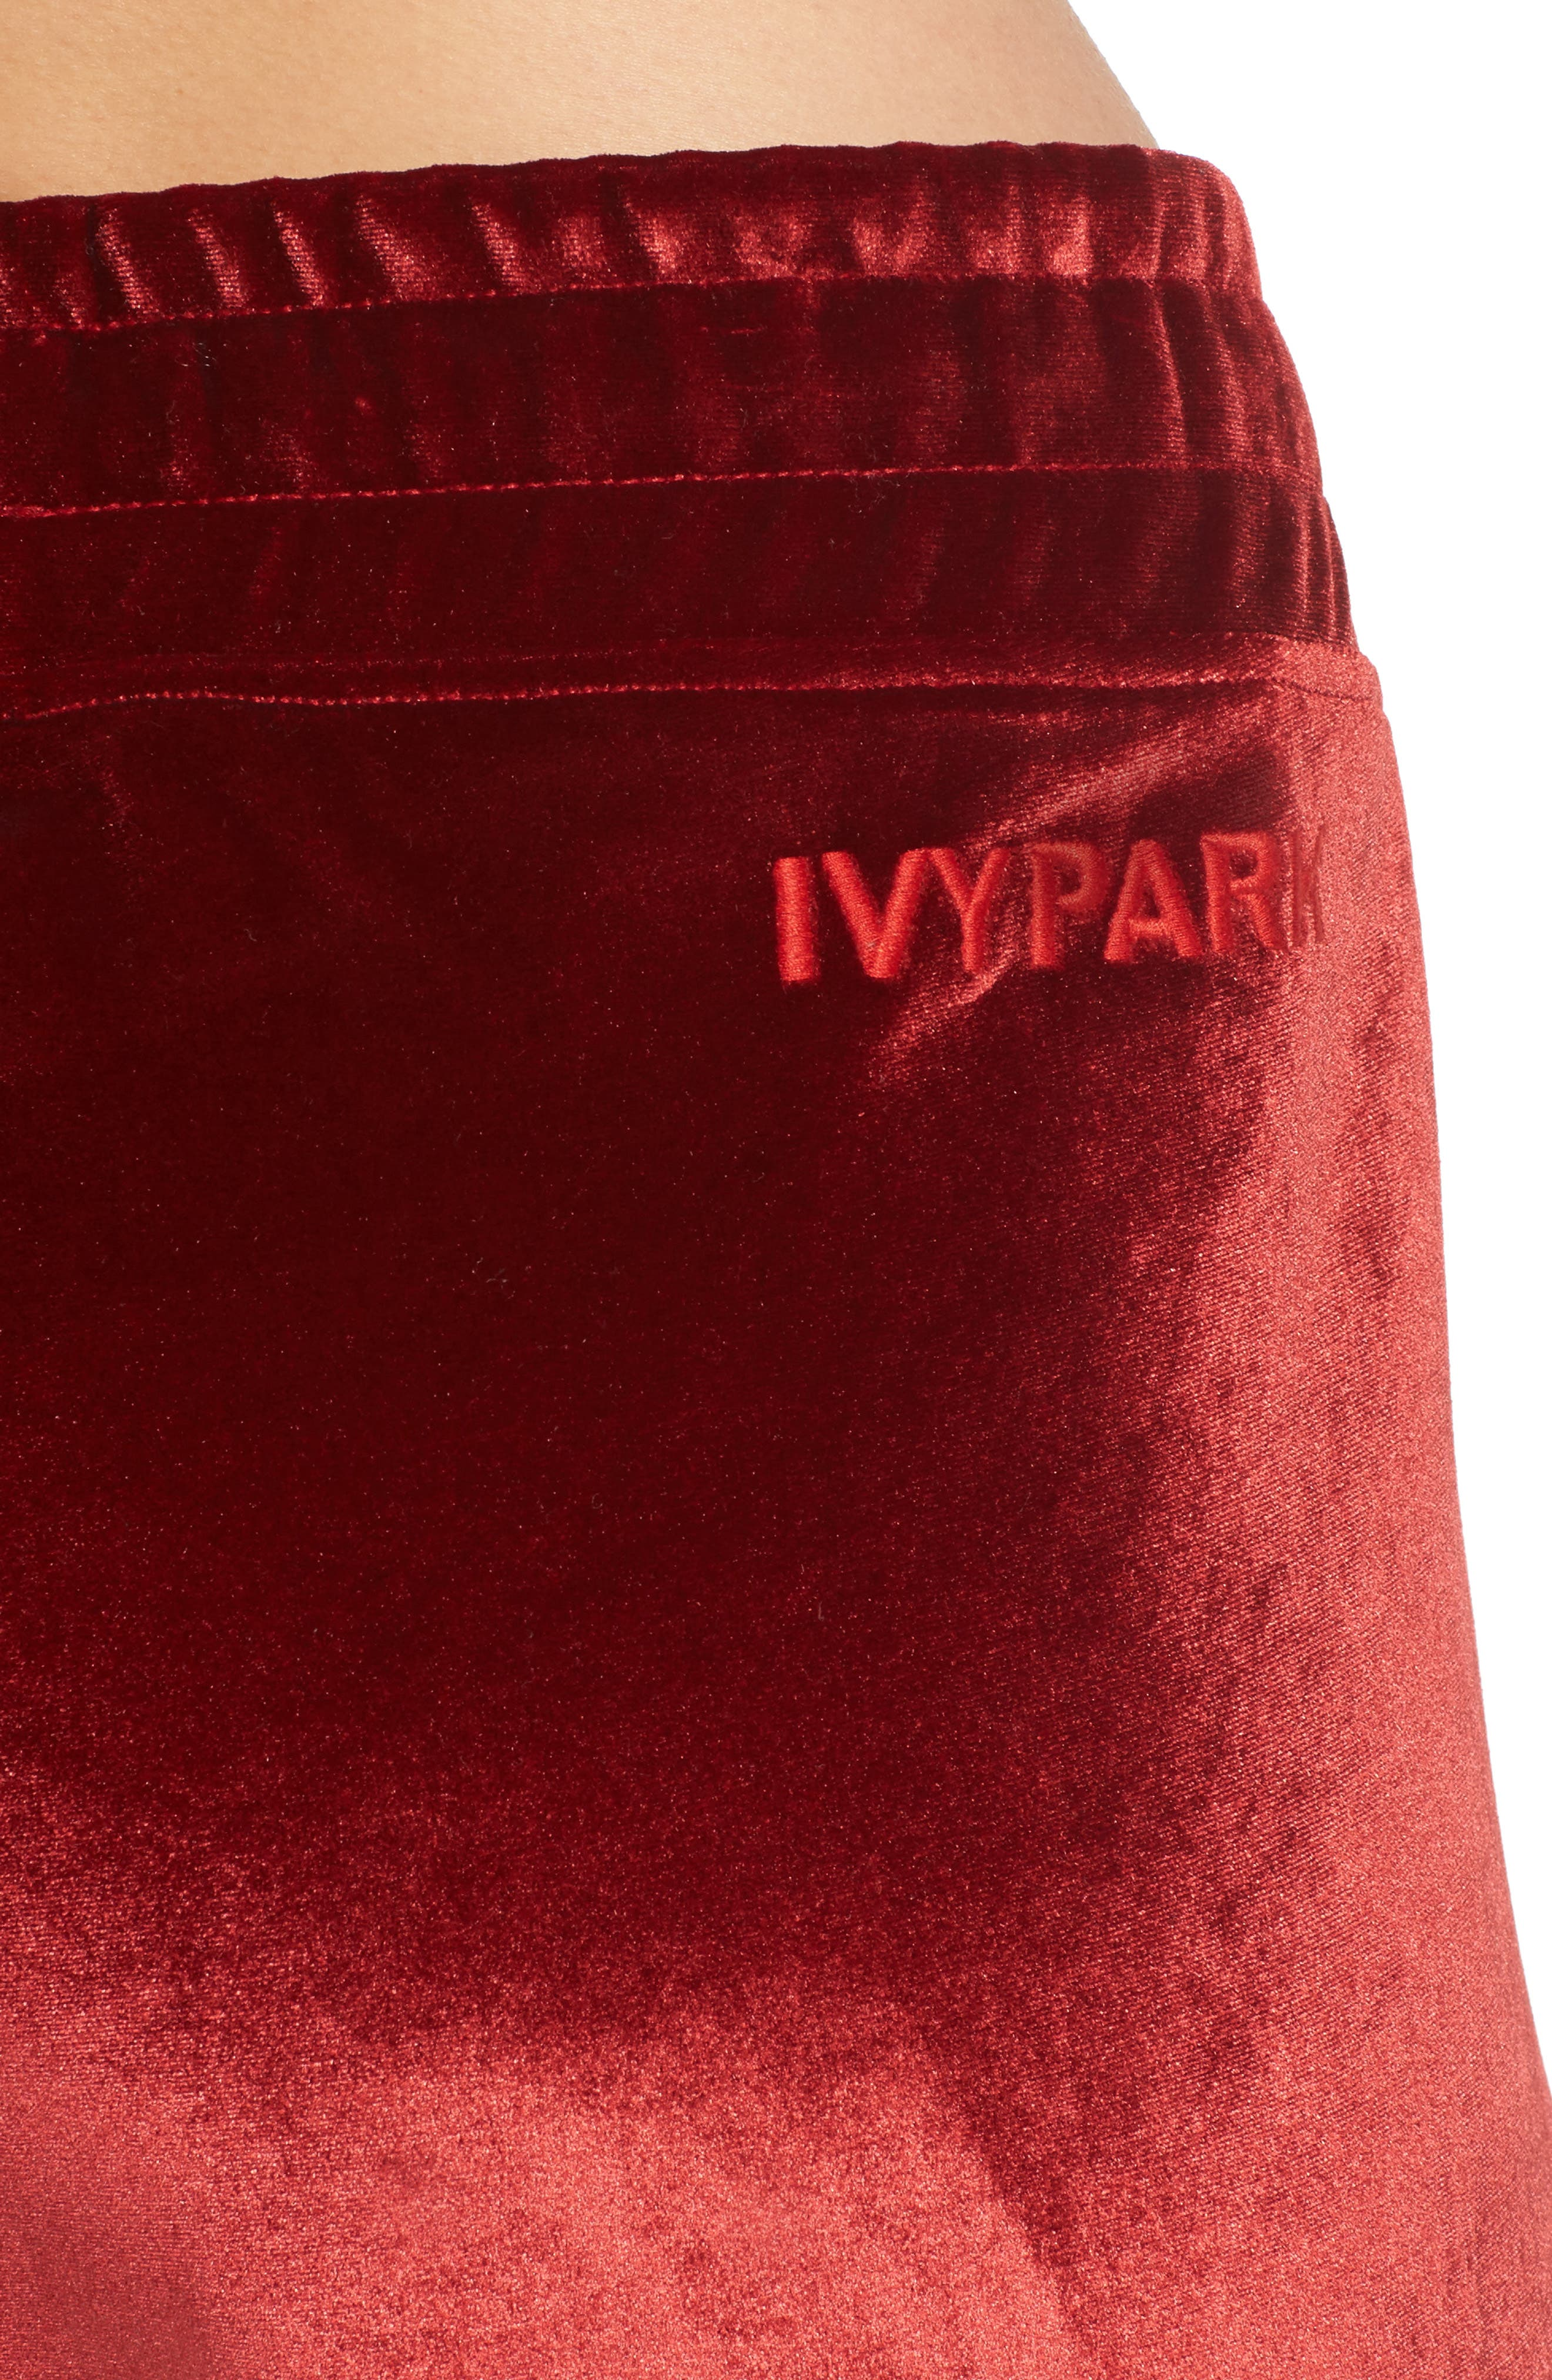 Velvet Jogger Pants,                             Alternate thumbnail 4, color,                             600